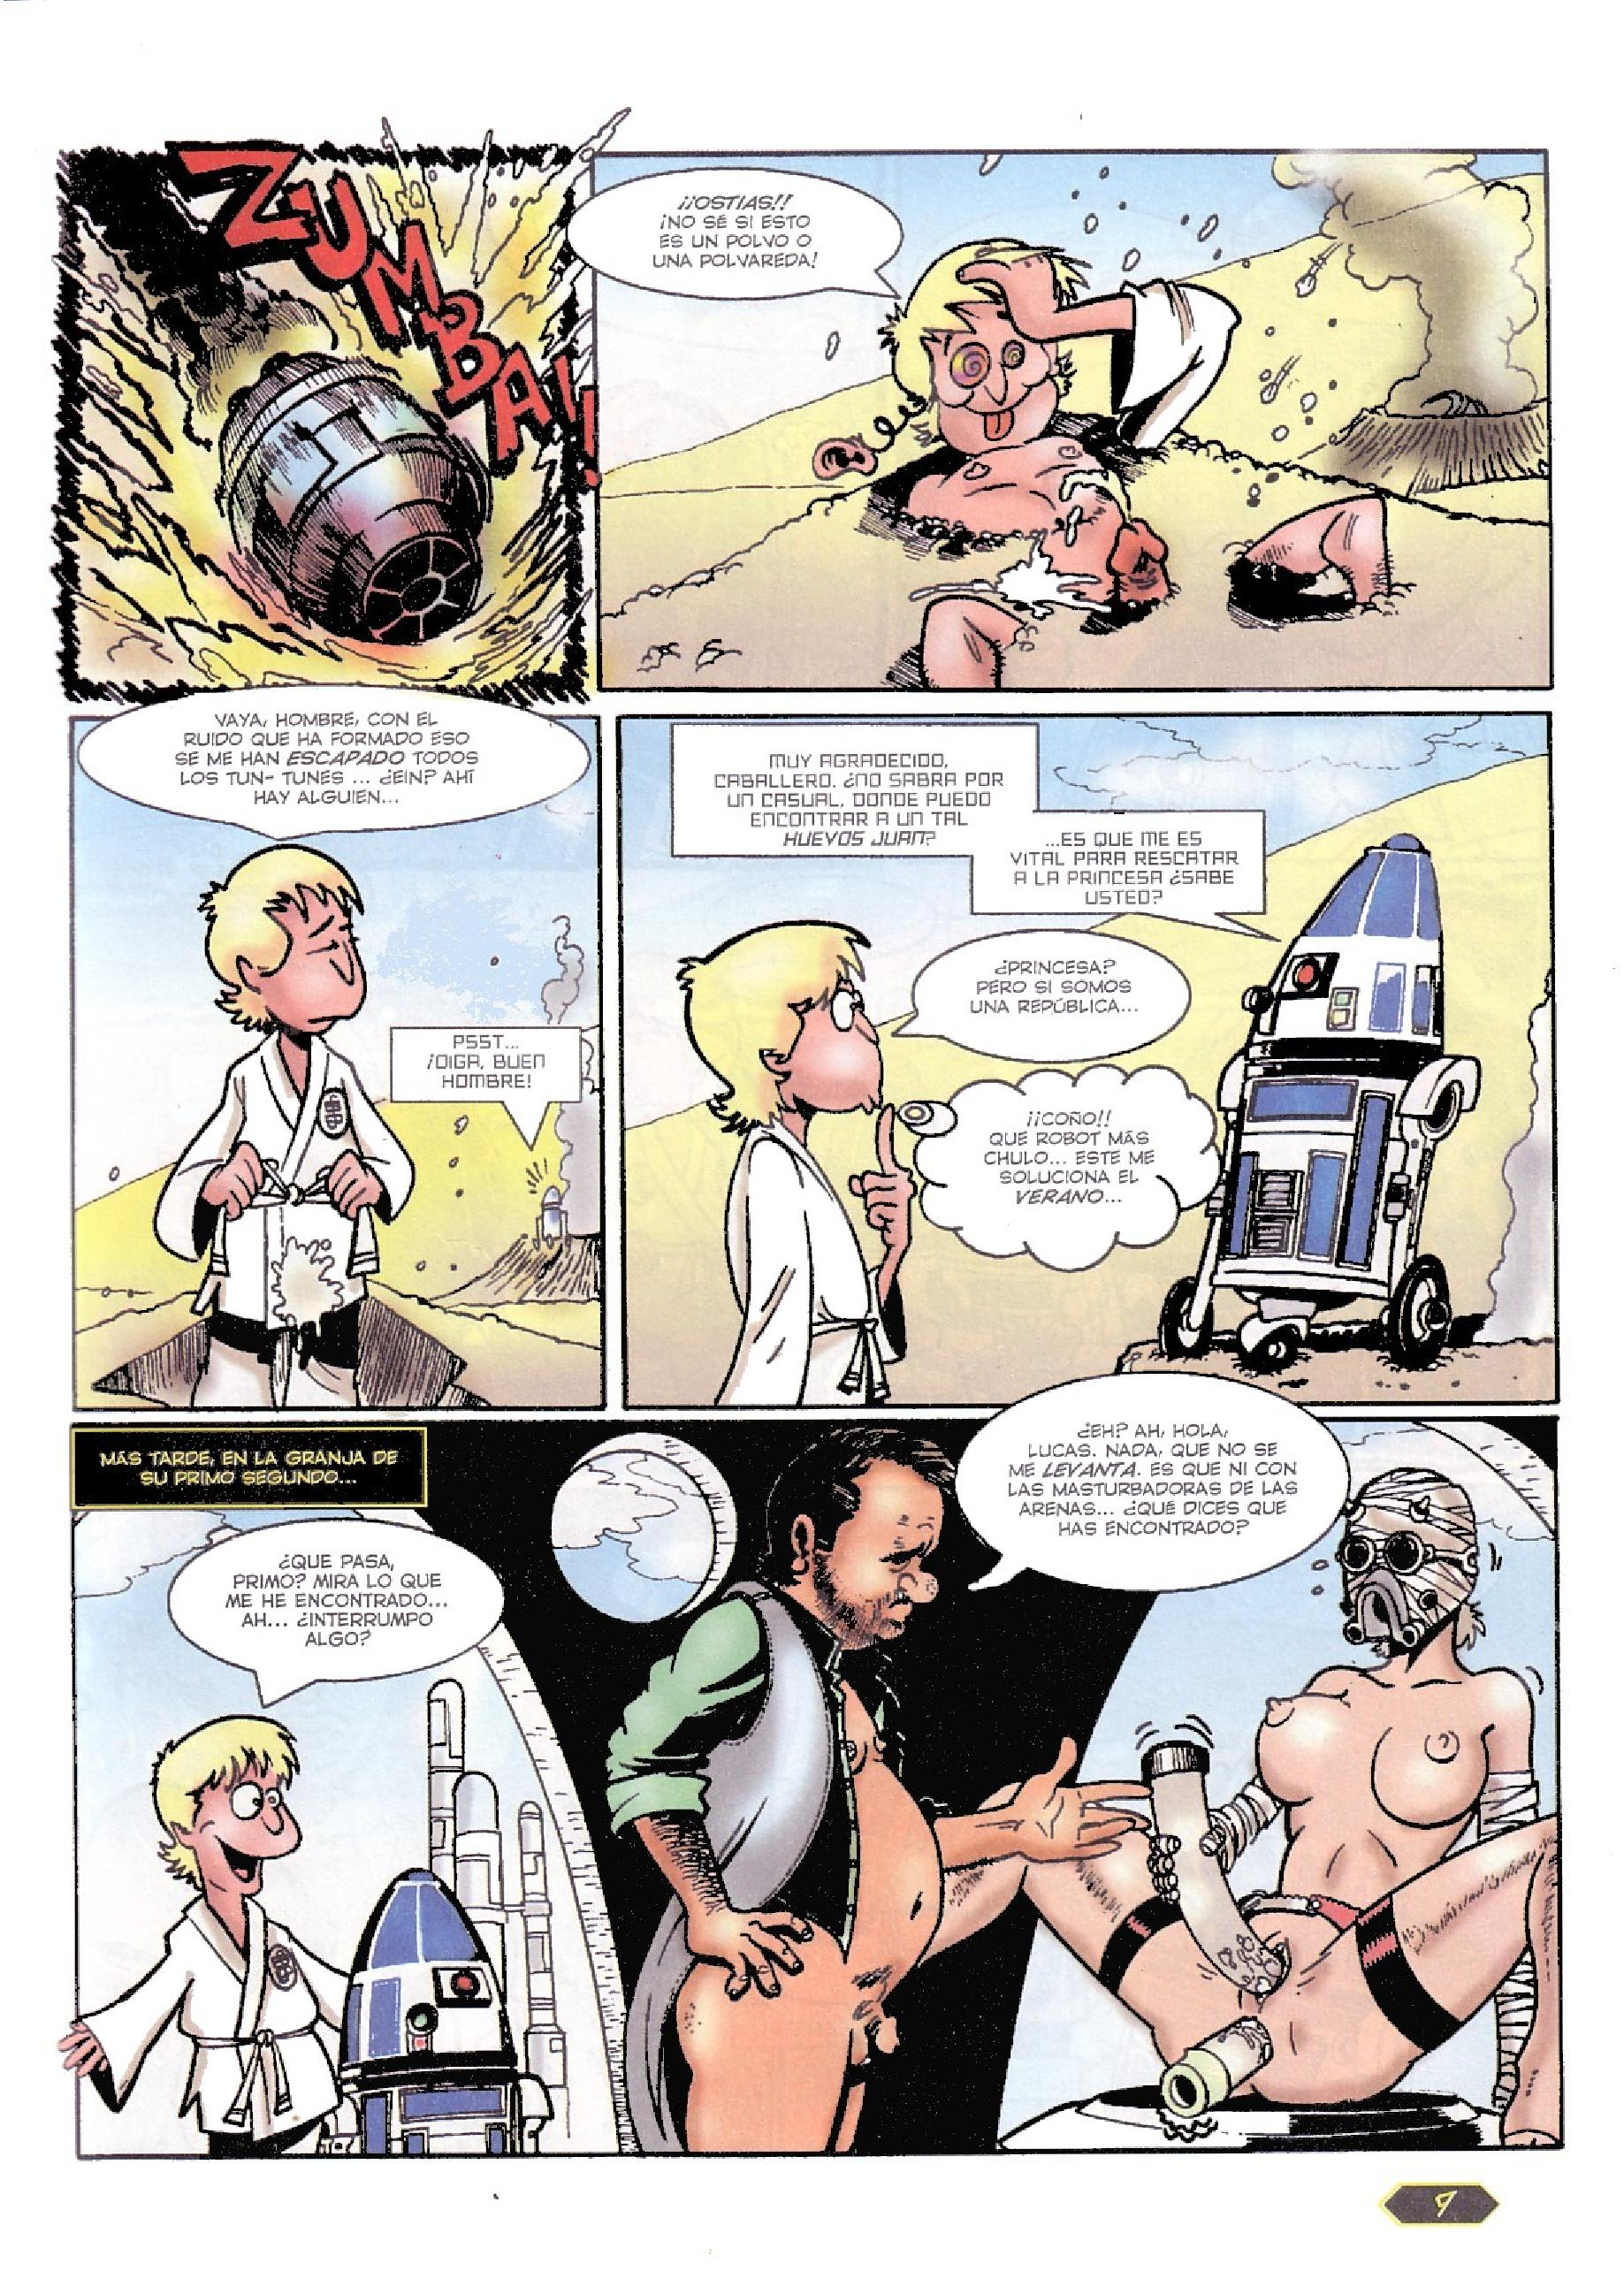 Star wars clone wars porn comics accept